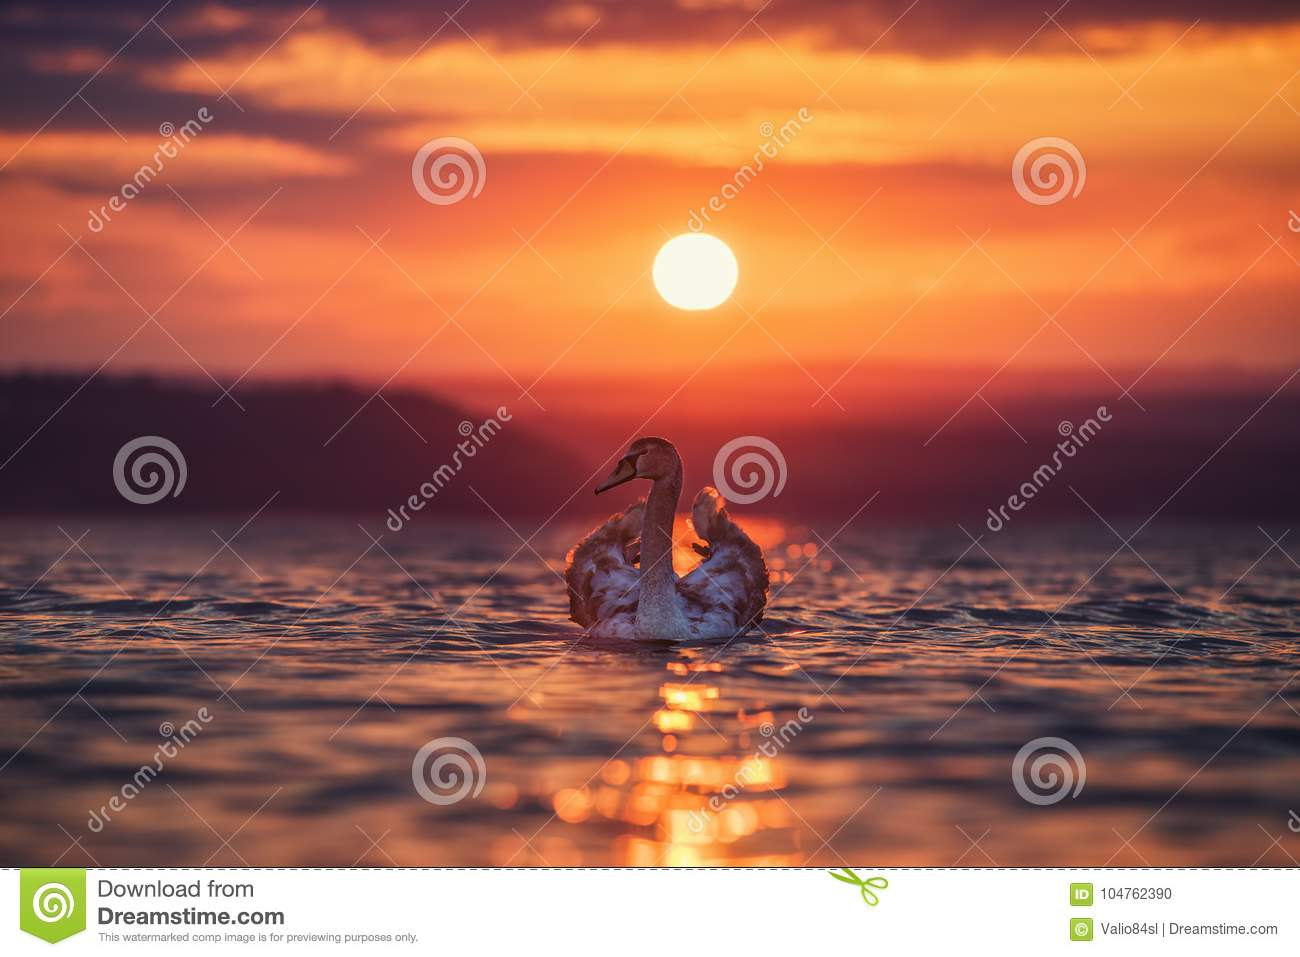 Swans in the sea and beautiful sunset